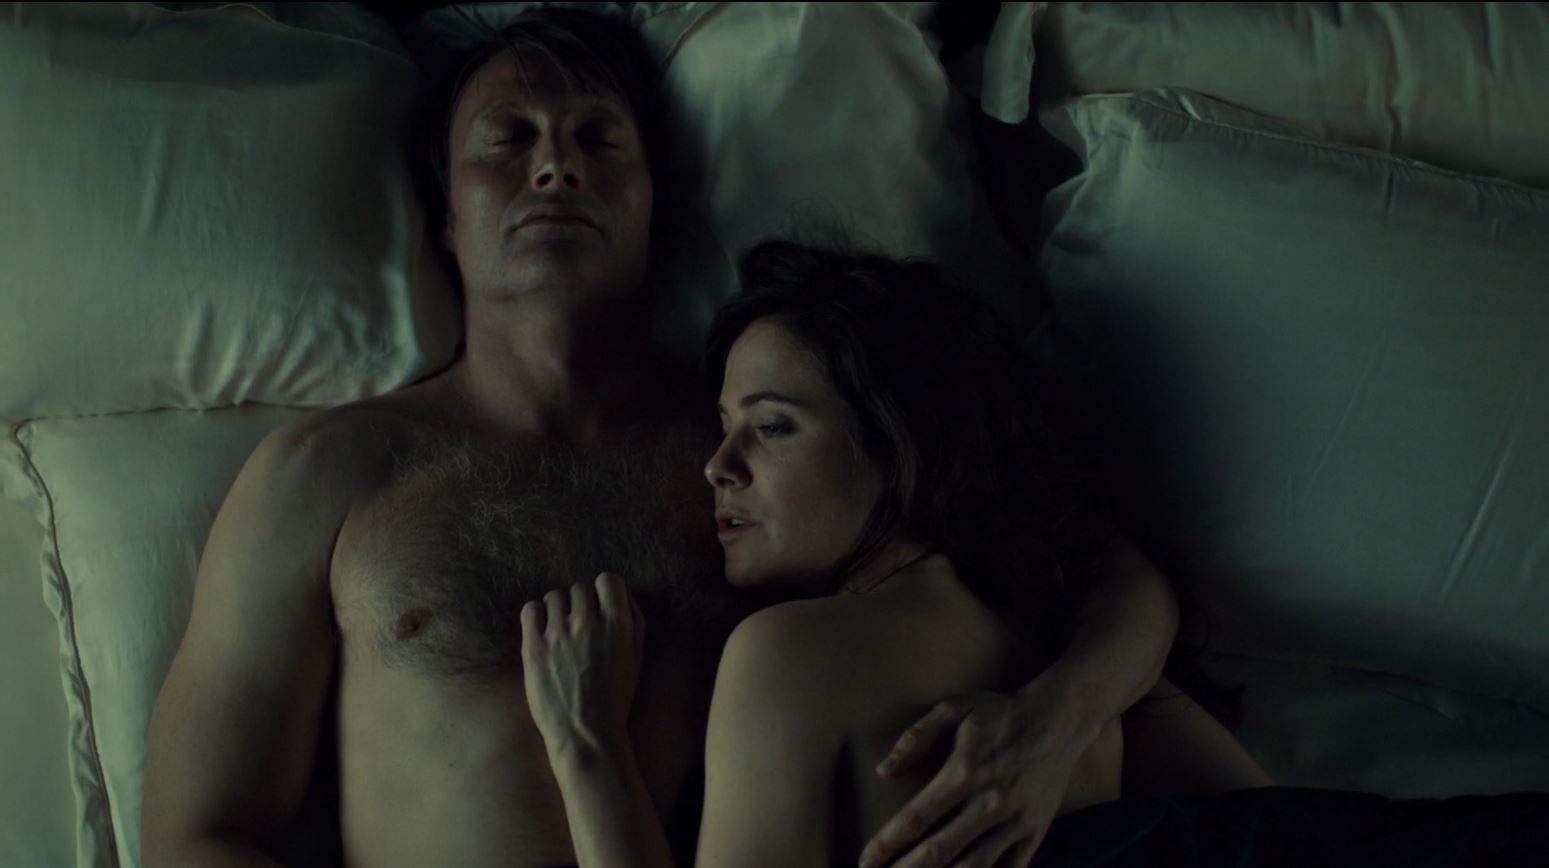 Hannibal Season 2 Episode 8 Su-zakana - Hannibal and Bloom in bed